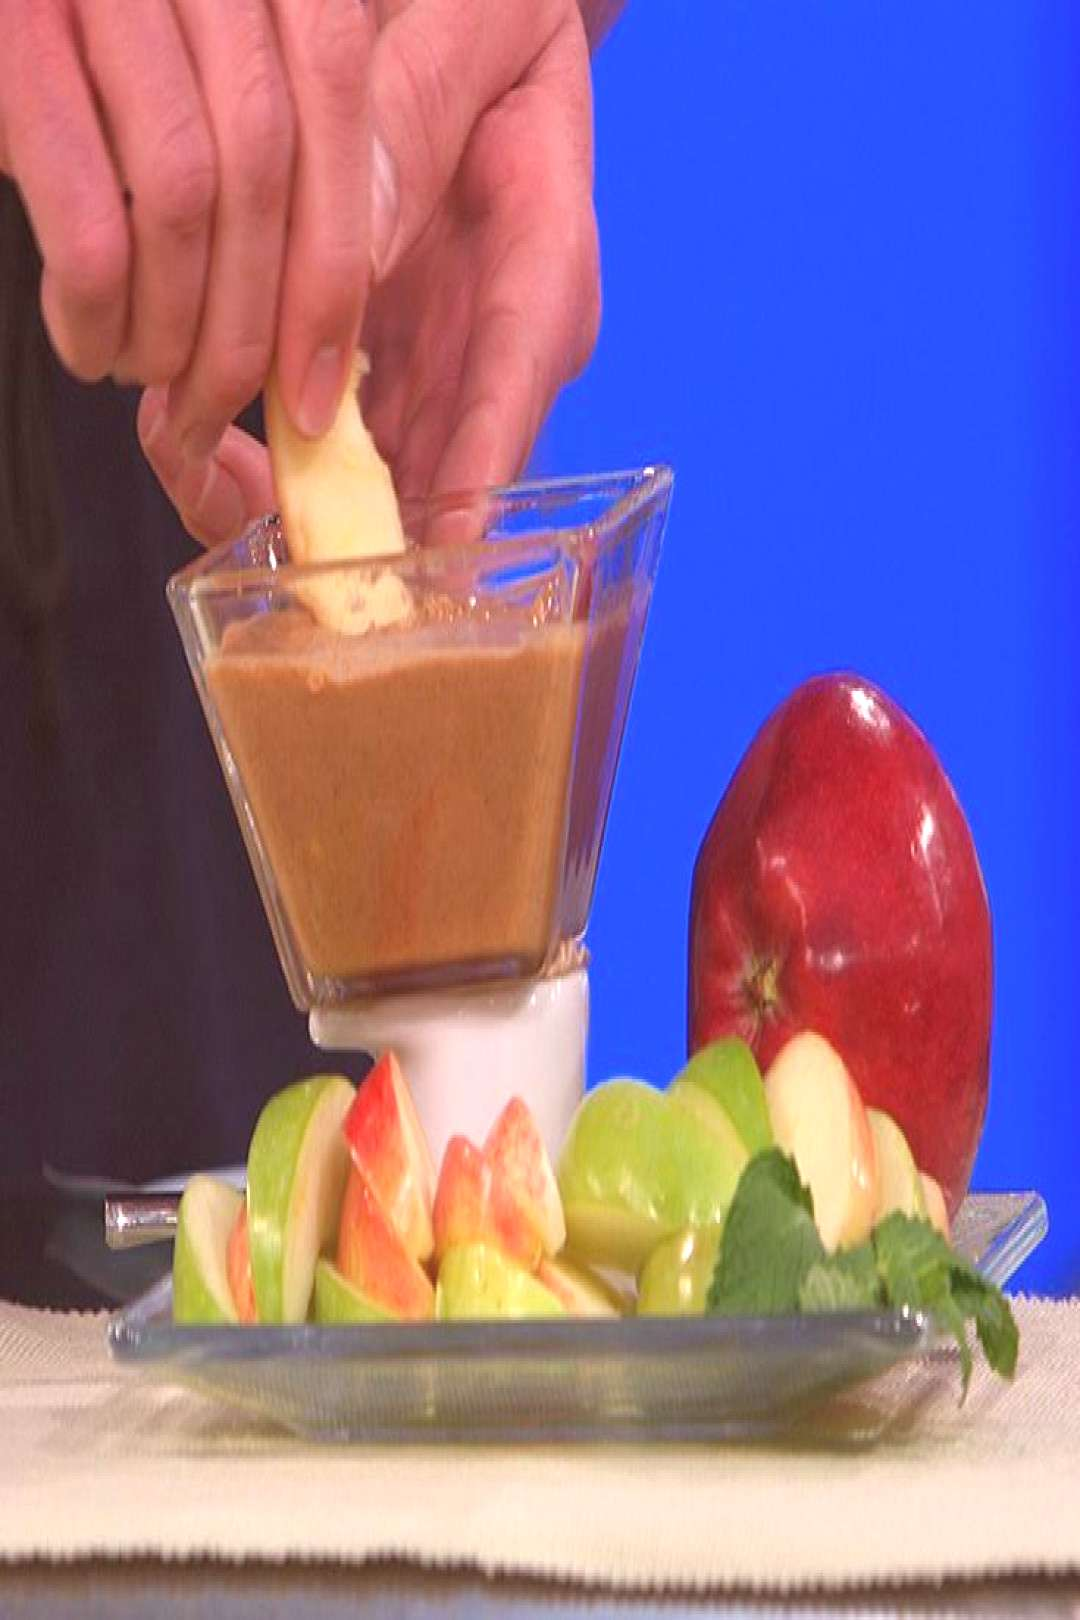 The Doctors TV Show - Dr. Travis Storks The Doctors Diet His new book tells ho... - The Doctors T